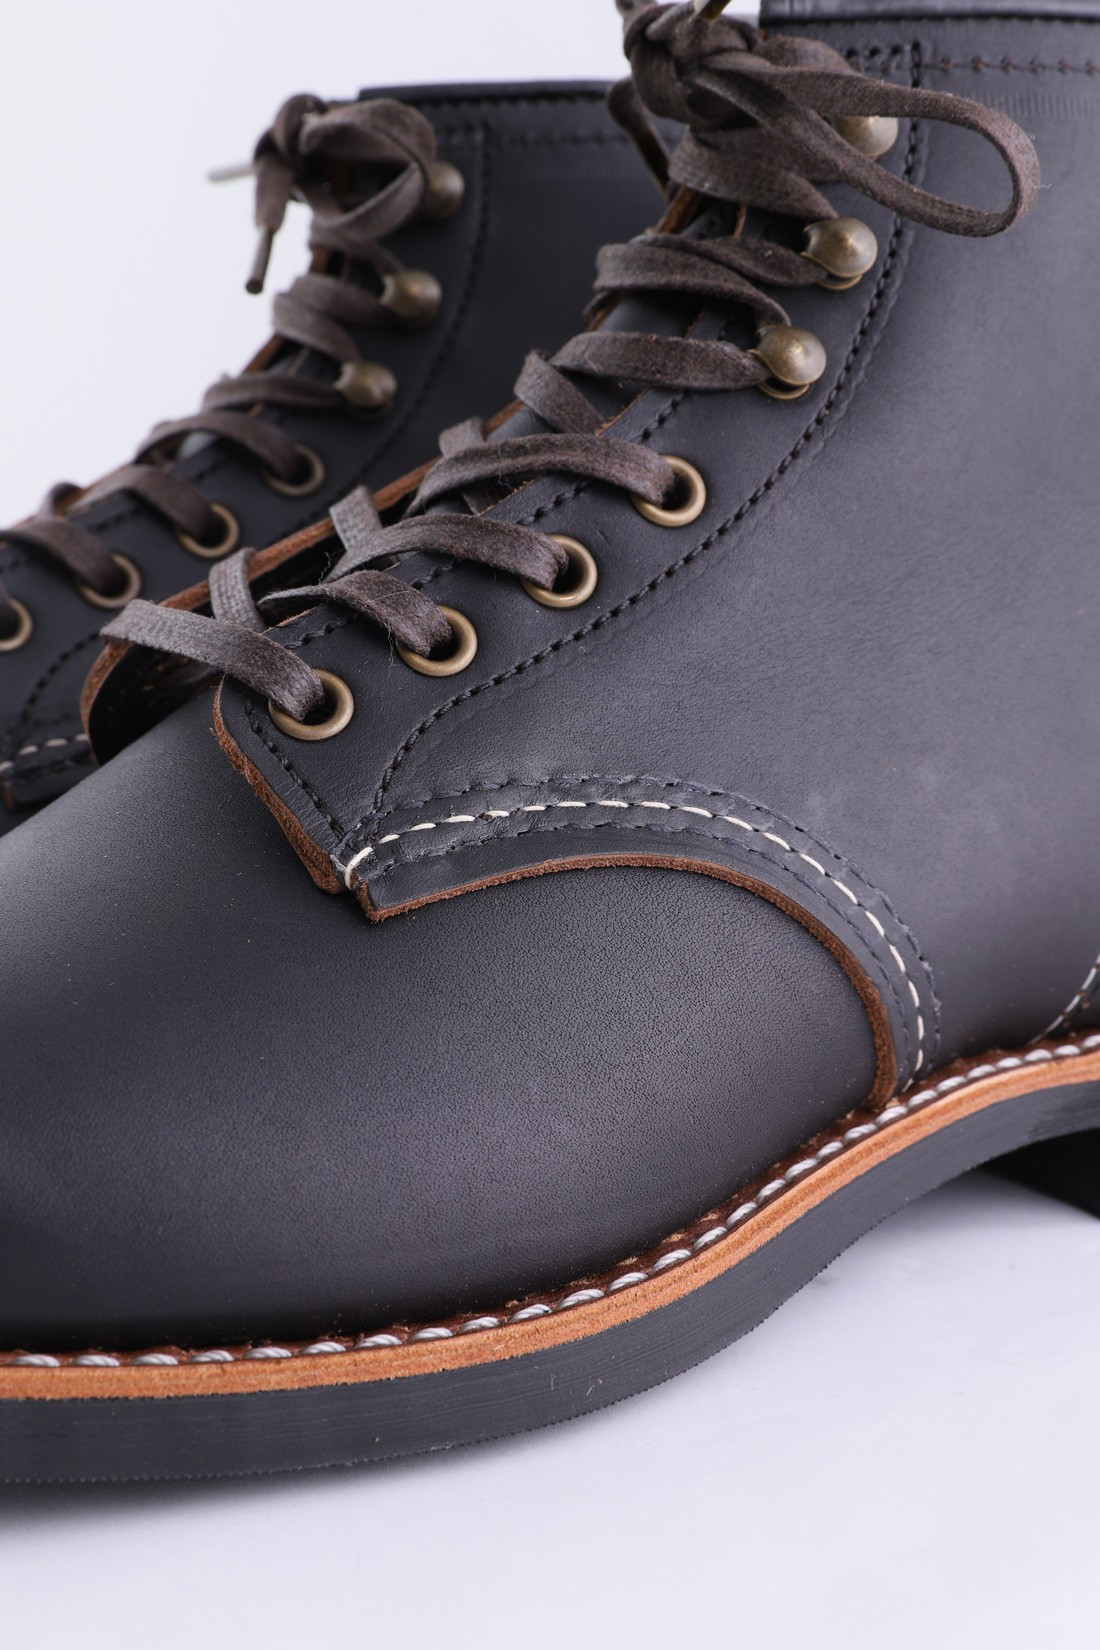 RED WING / Blacksmith style n.3345 Black